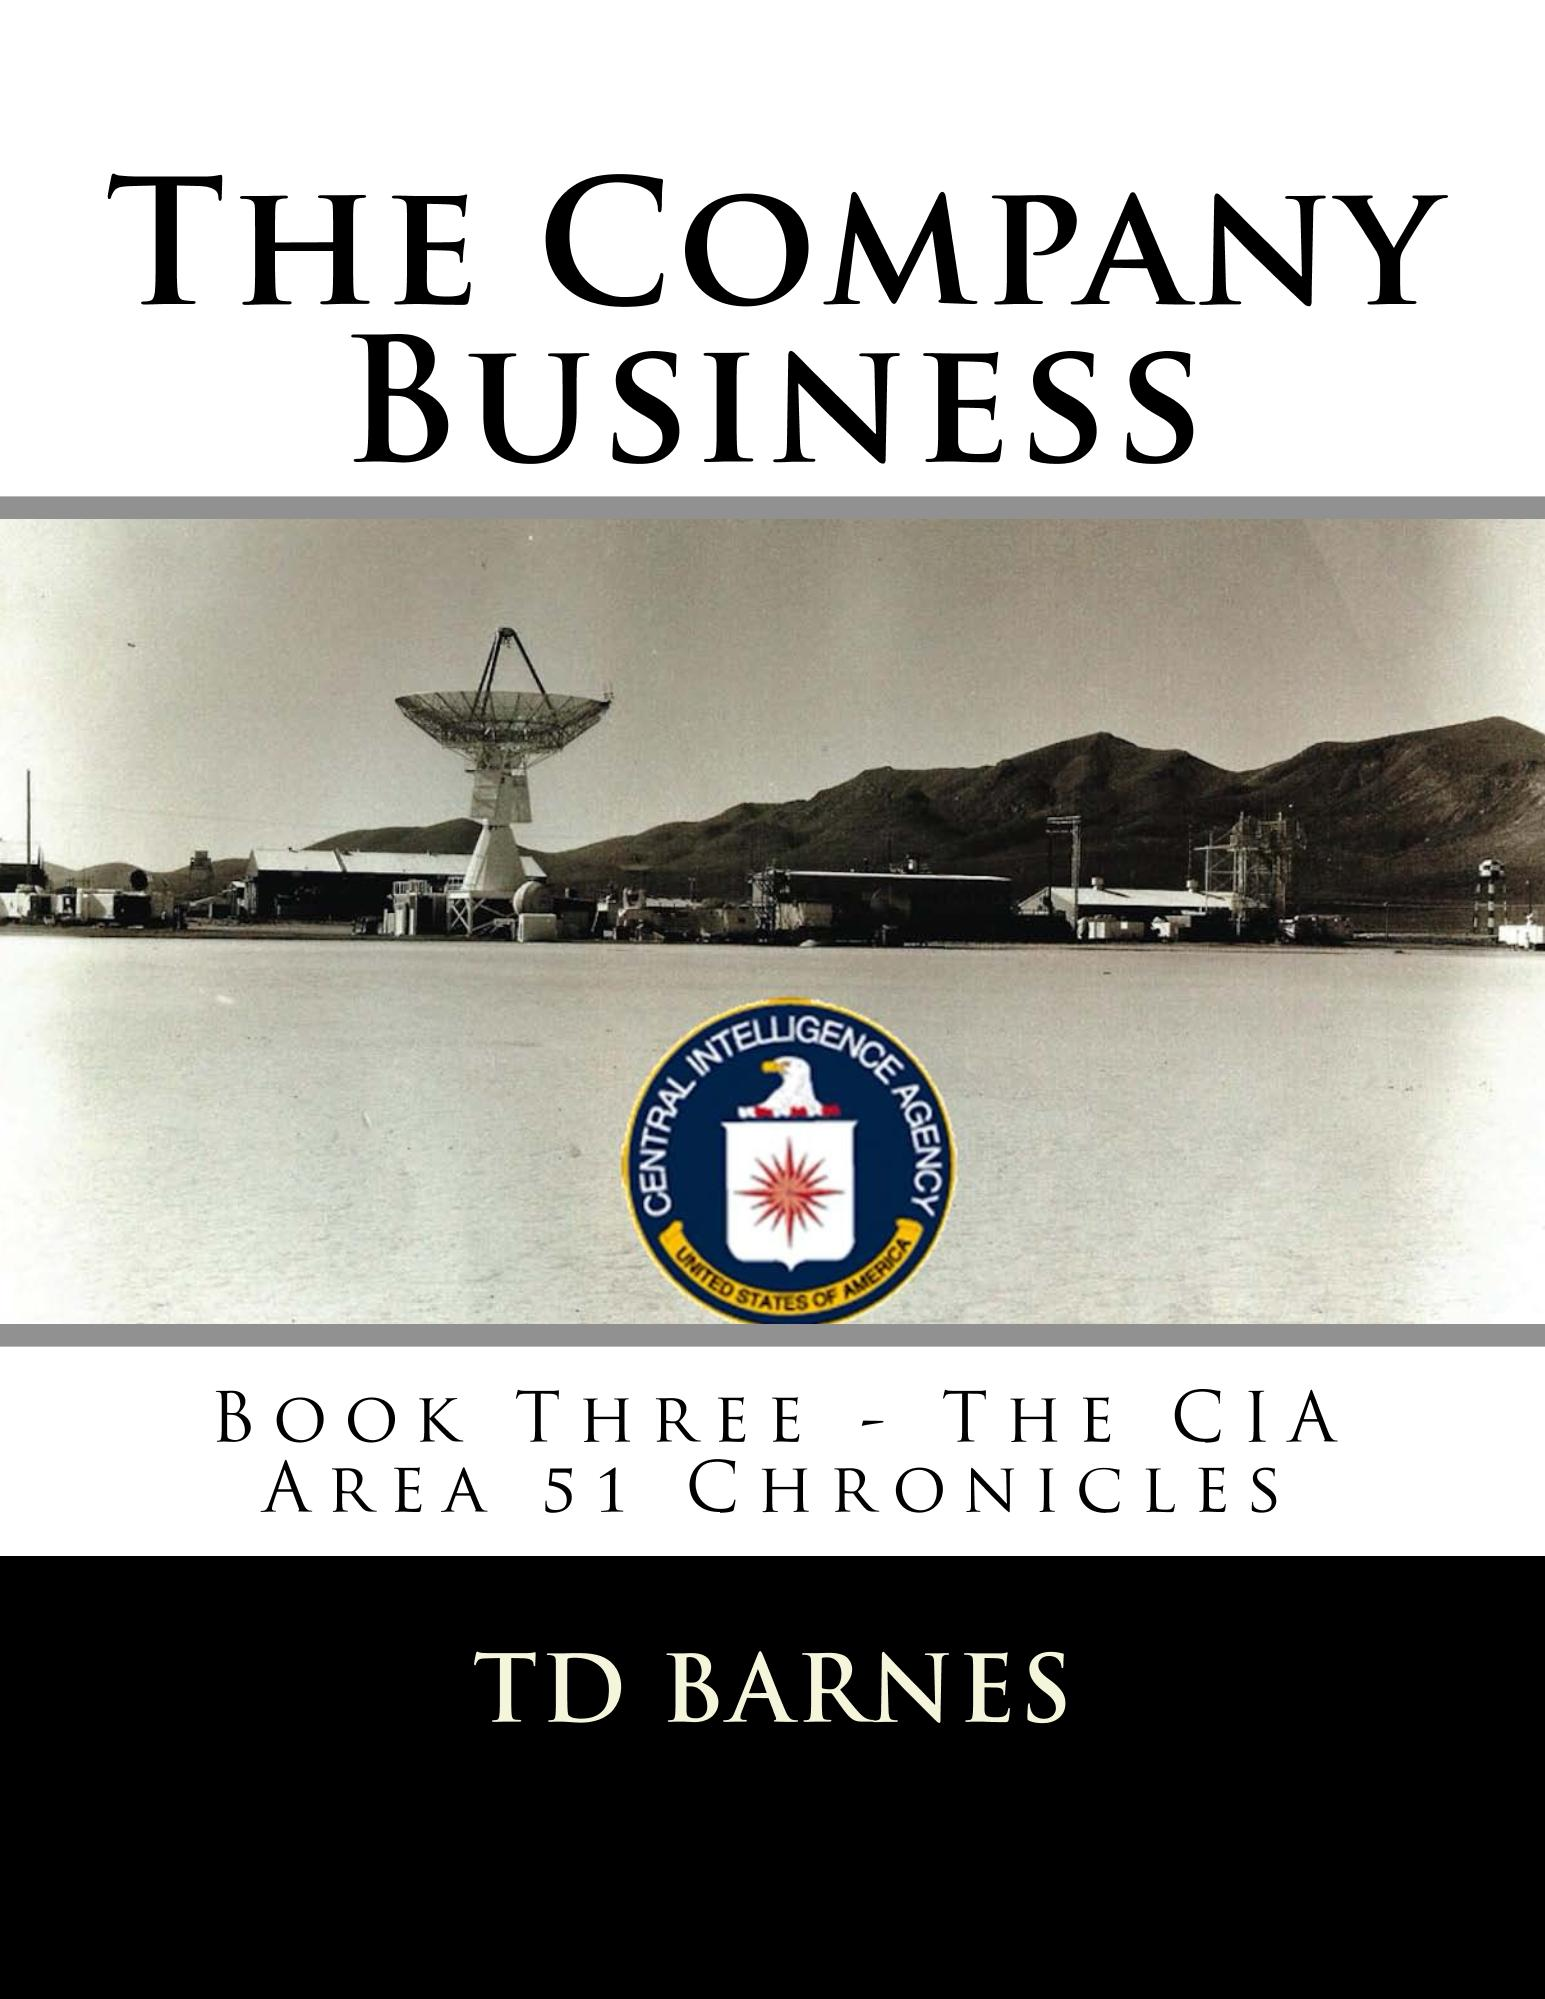 The Central Intelligence Agency Founded Area 51 To Develop Revolutionary High Flying U 2 Reconnaissance Plane Becomes A Station For